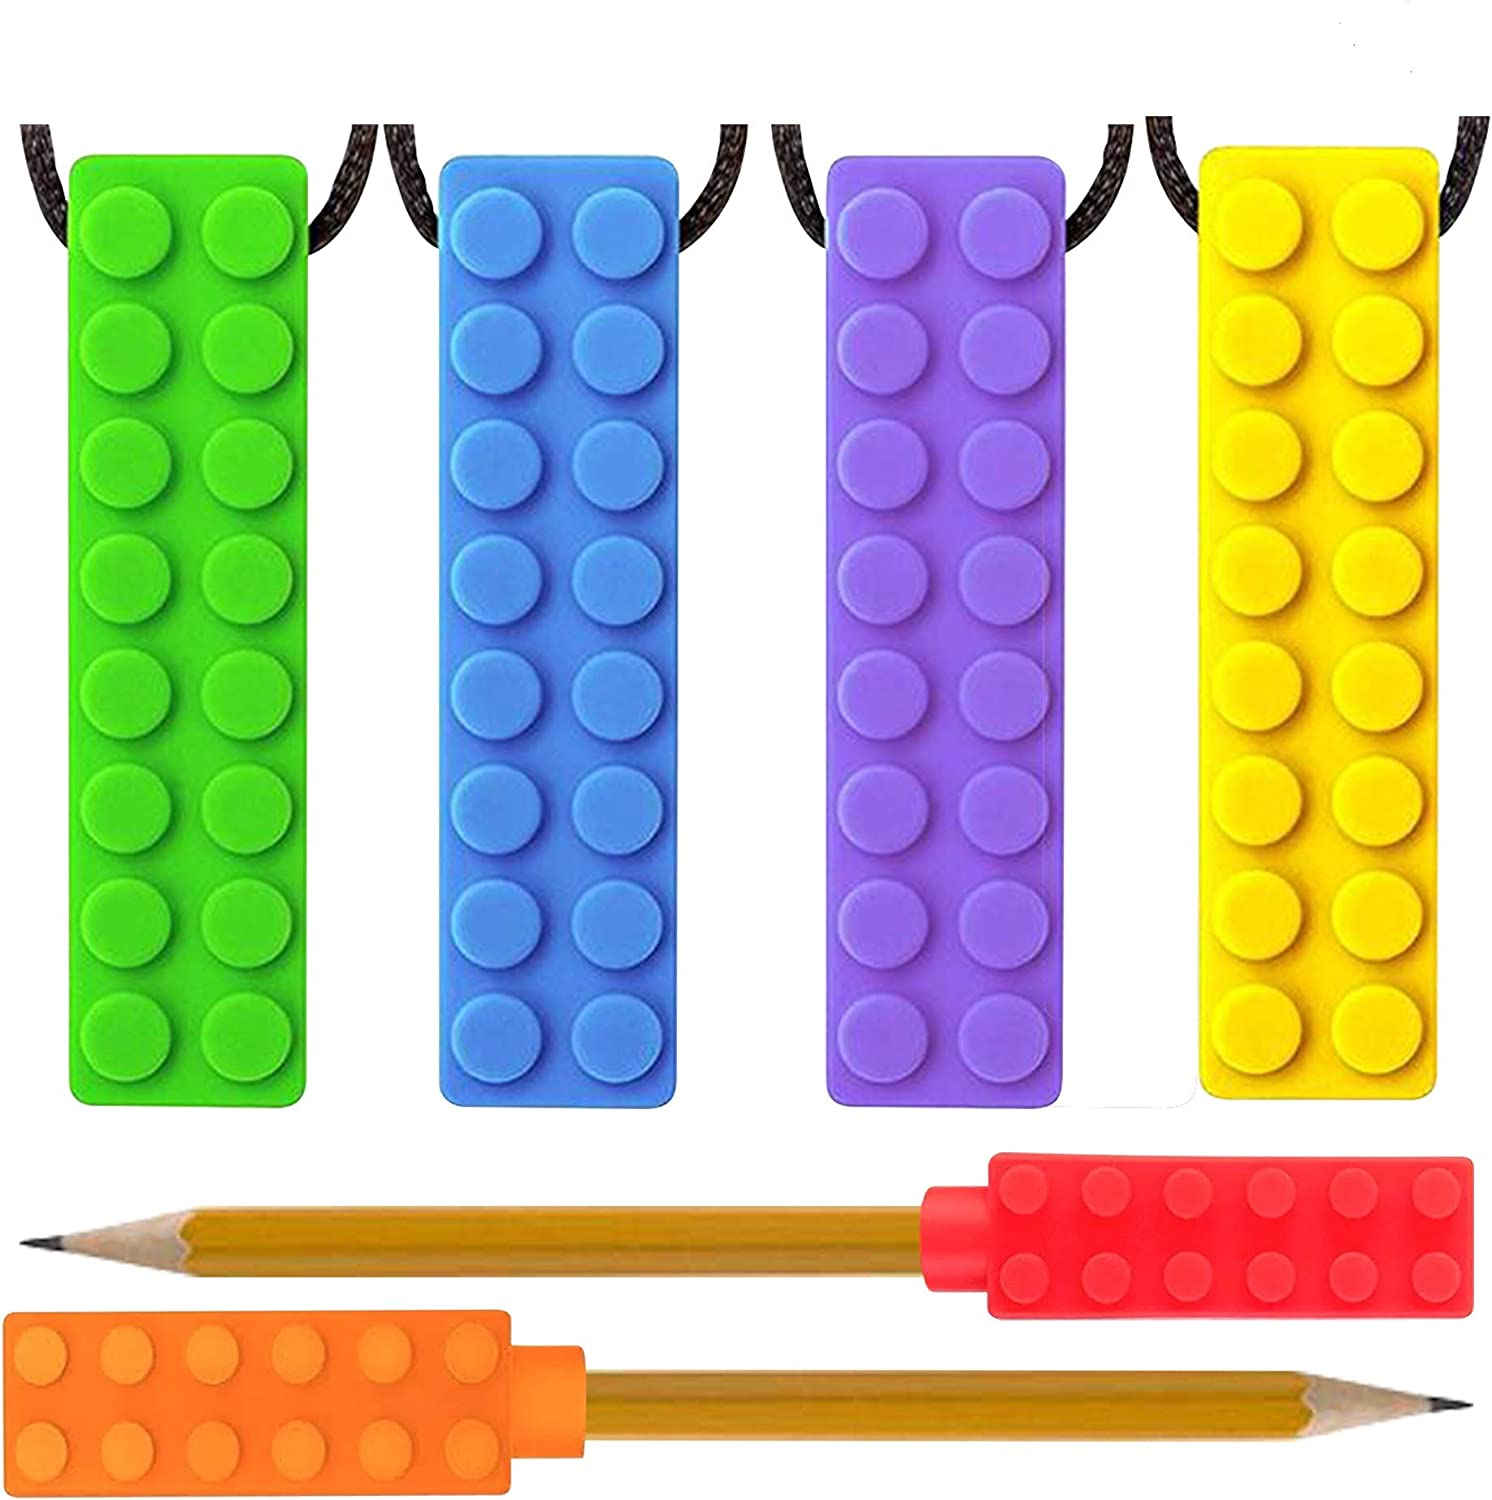 Sensory Chew Necklace for Boys & Girls + Pencil Topper 6pcs - Food Grade Silicone Chewy Brick for Kids with Autism toys, Baby teething necklace, ADHD toys, Fidget toys - Nail Biting Treatment for Kids